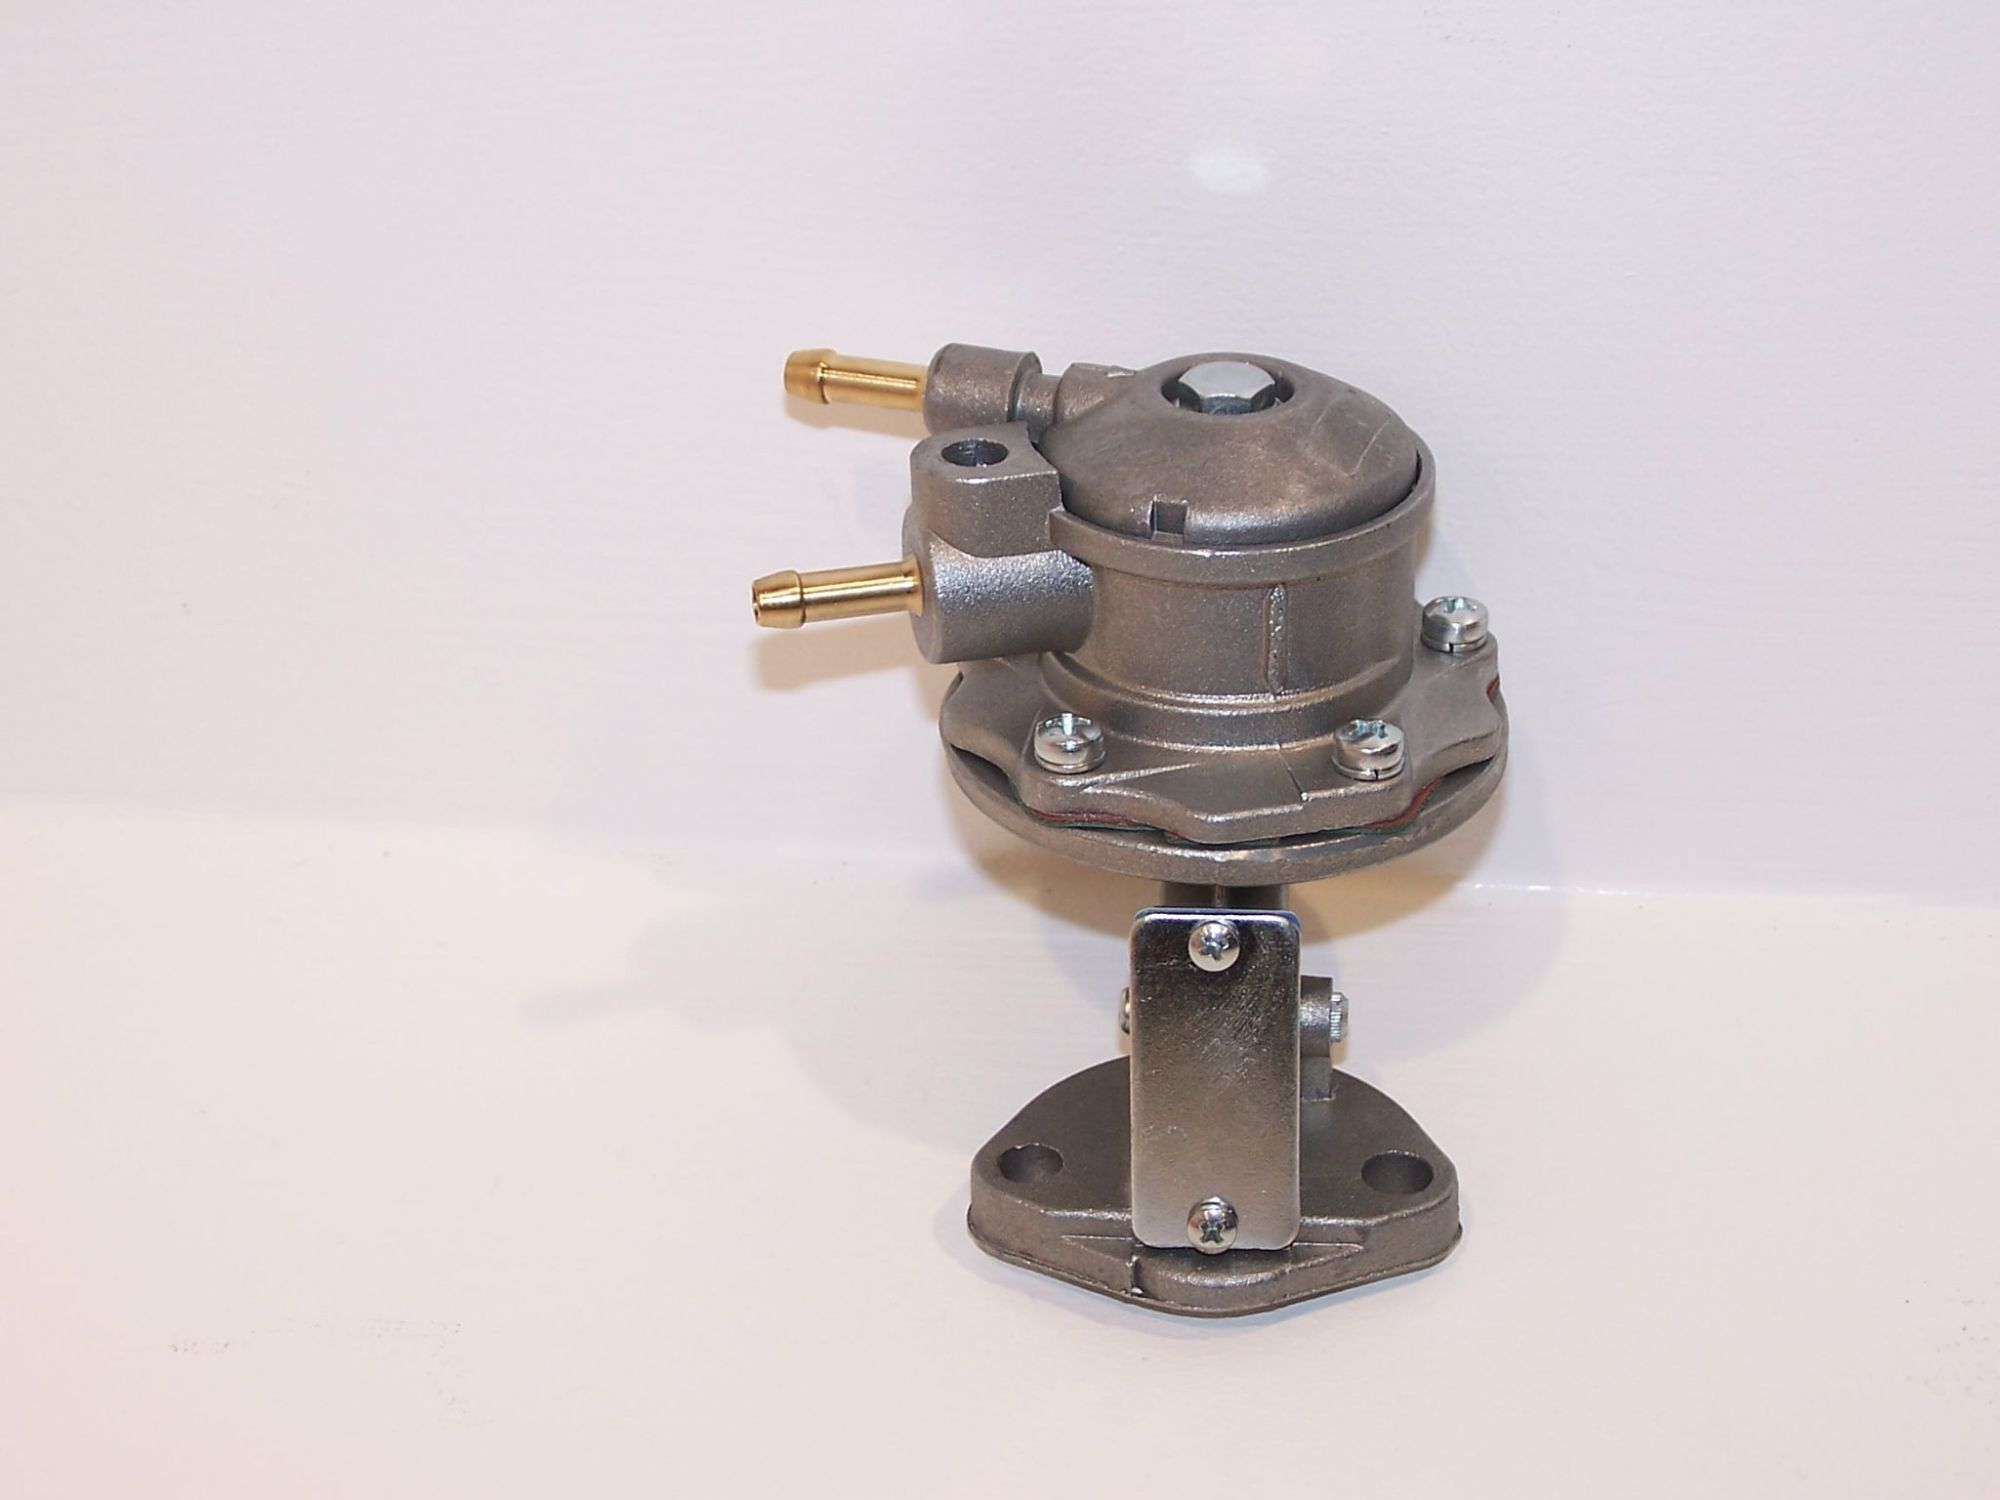 hight resolution of fuel pump vw type 25 1600cc ct 1900cc water cooled 1981 to 1991 4956 p jpg